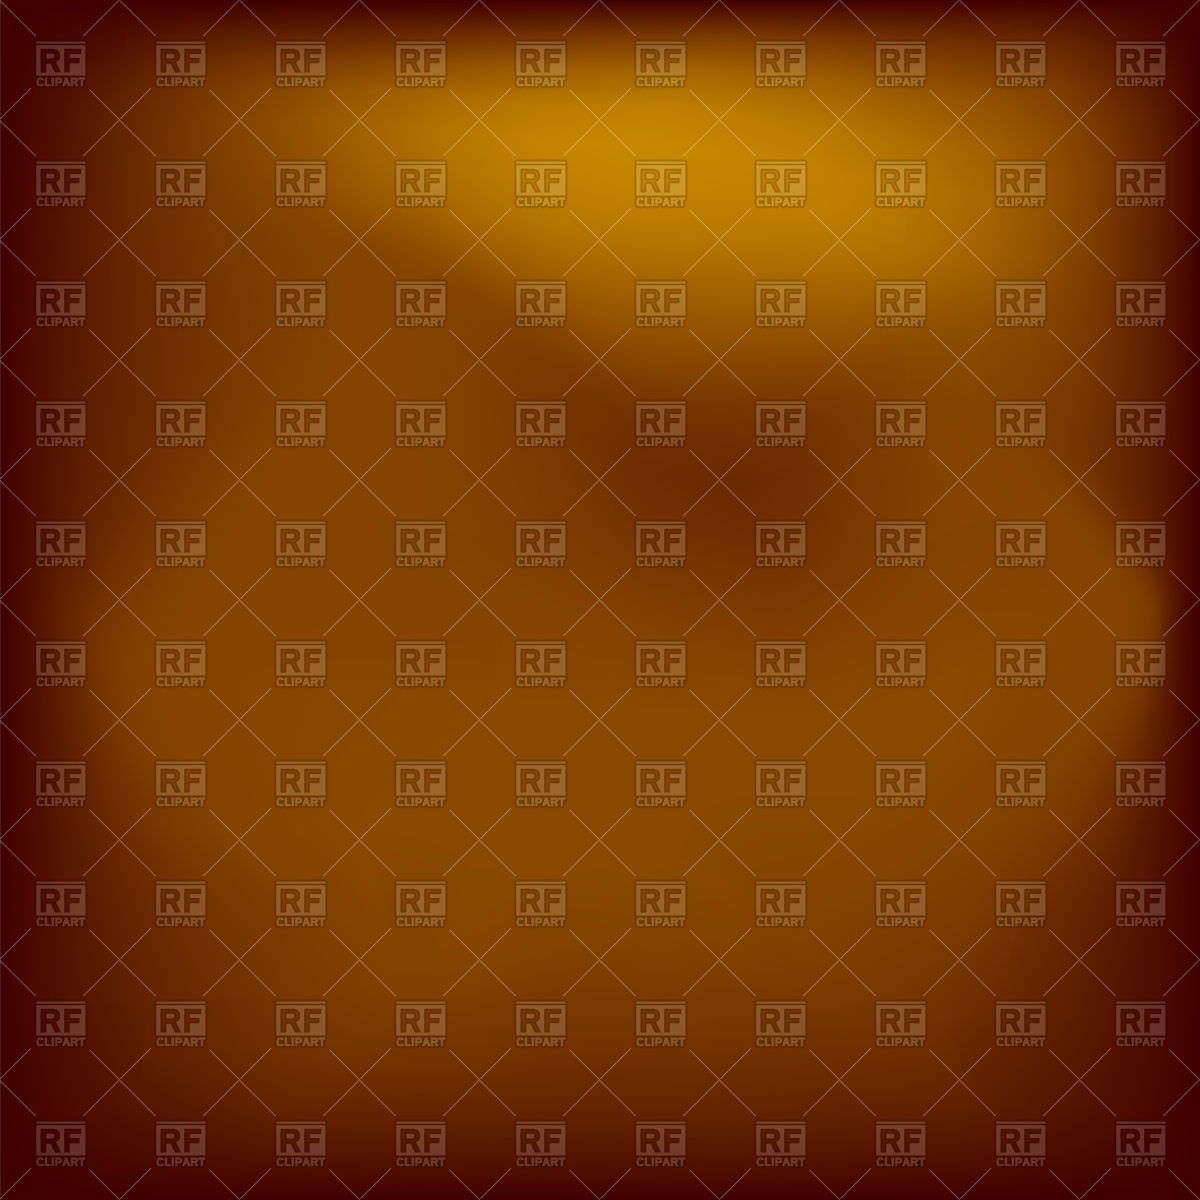 Abstract brown blurred background Vector Image #88264.